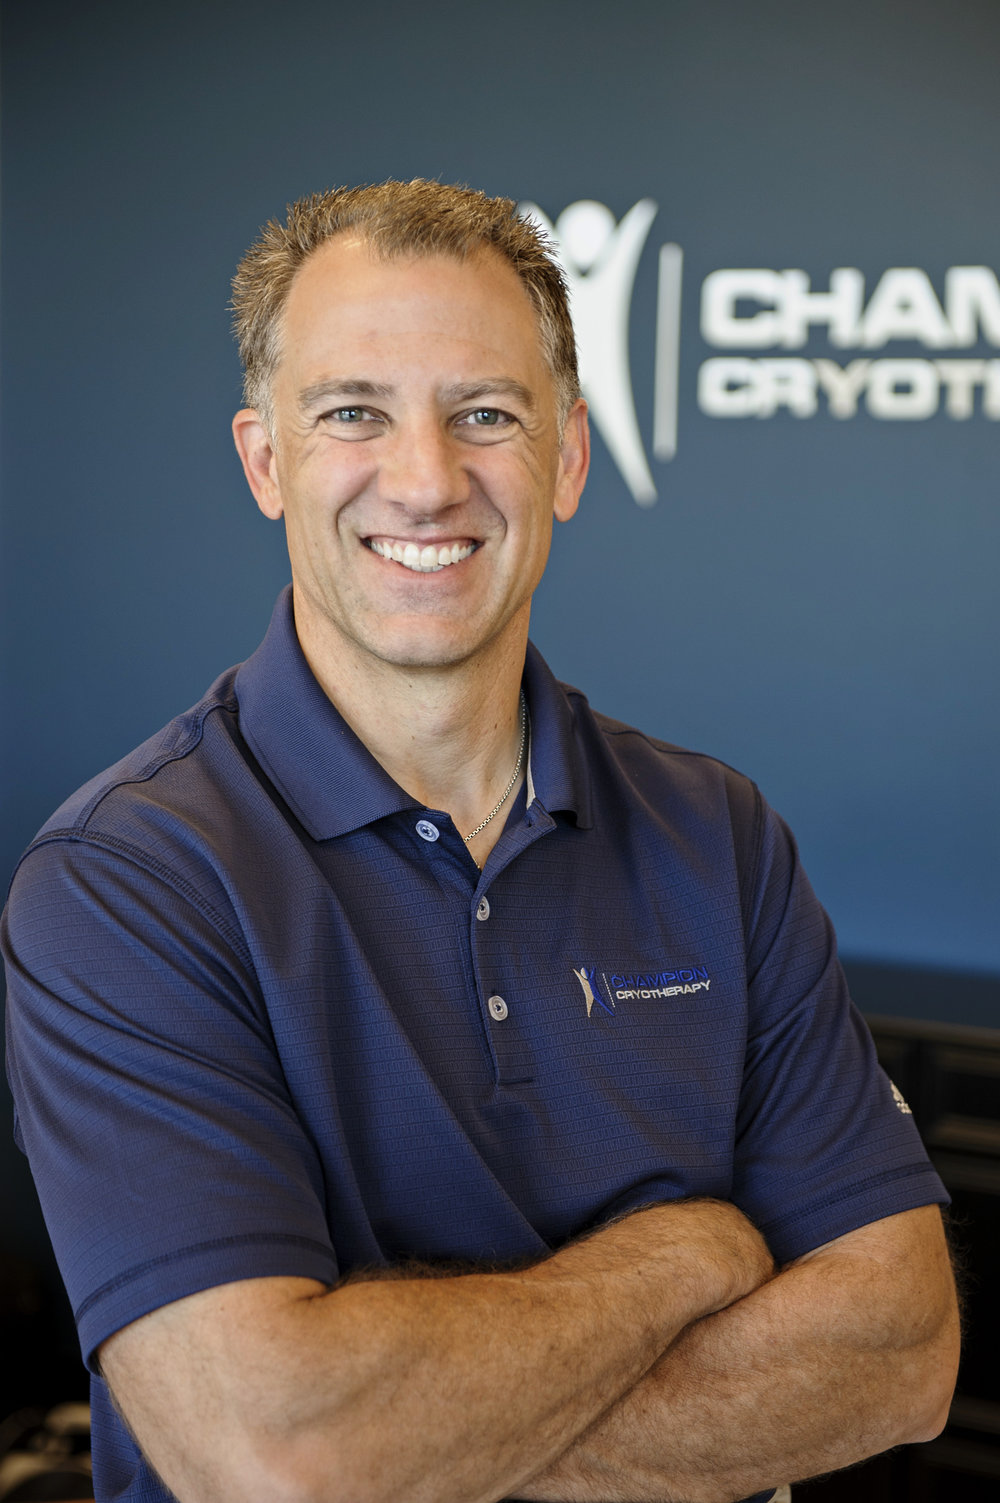 Image of Todd Pendleton, Champion Cryotherapy Founder.  Whole body cryotherapy at Austin's leading cryo spa. Restore tired muscles  and recover from back and joint pain using the proven healing therapy of cold temperatures. Offering whole body cryotherapy, cold laser therapy, sport massage therapy, Normatec compression, and more.